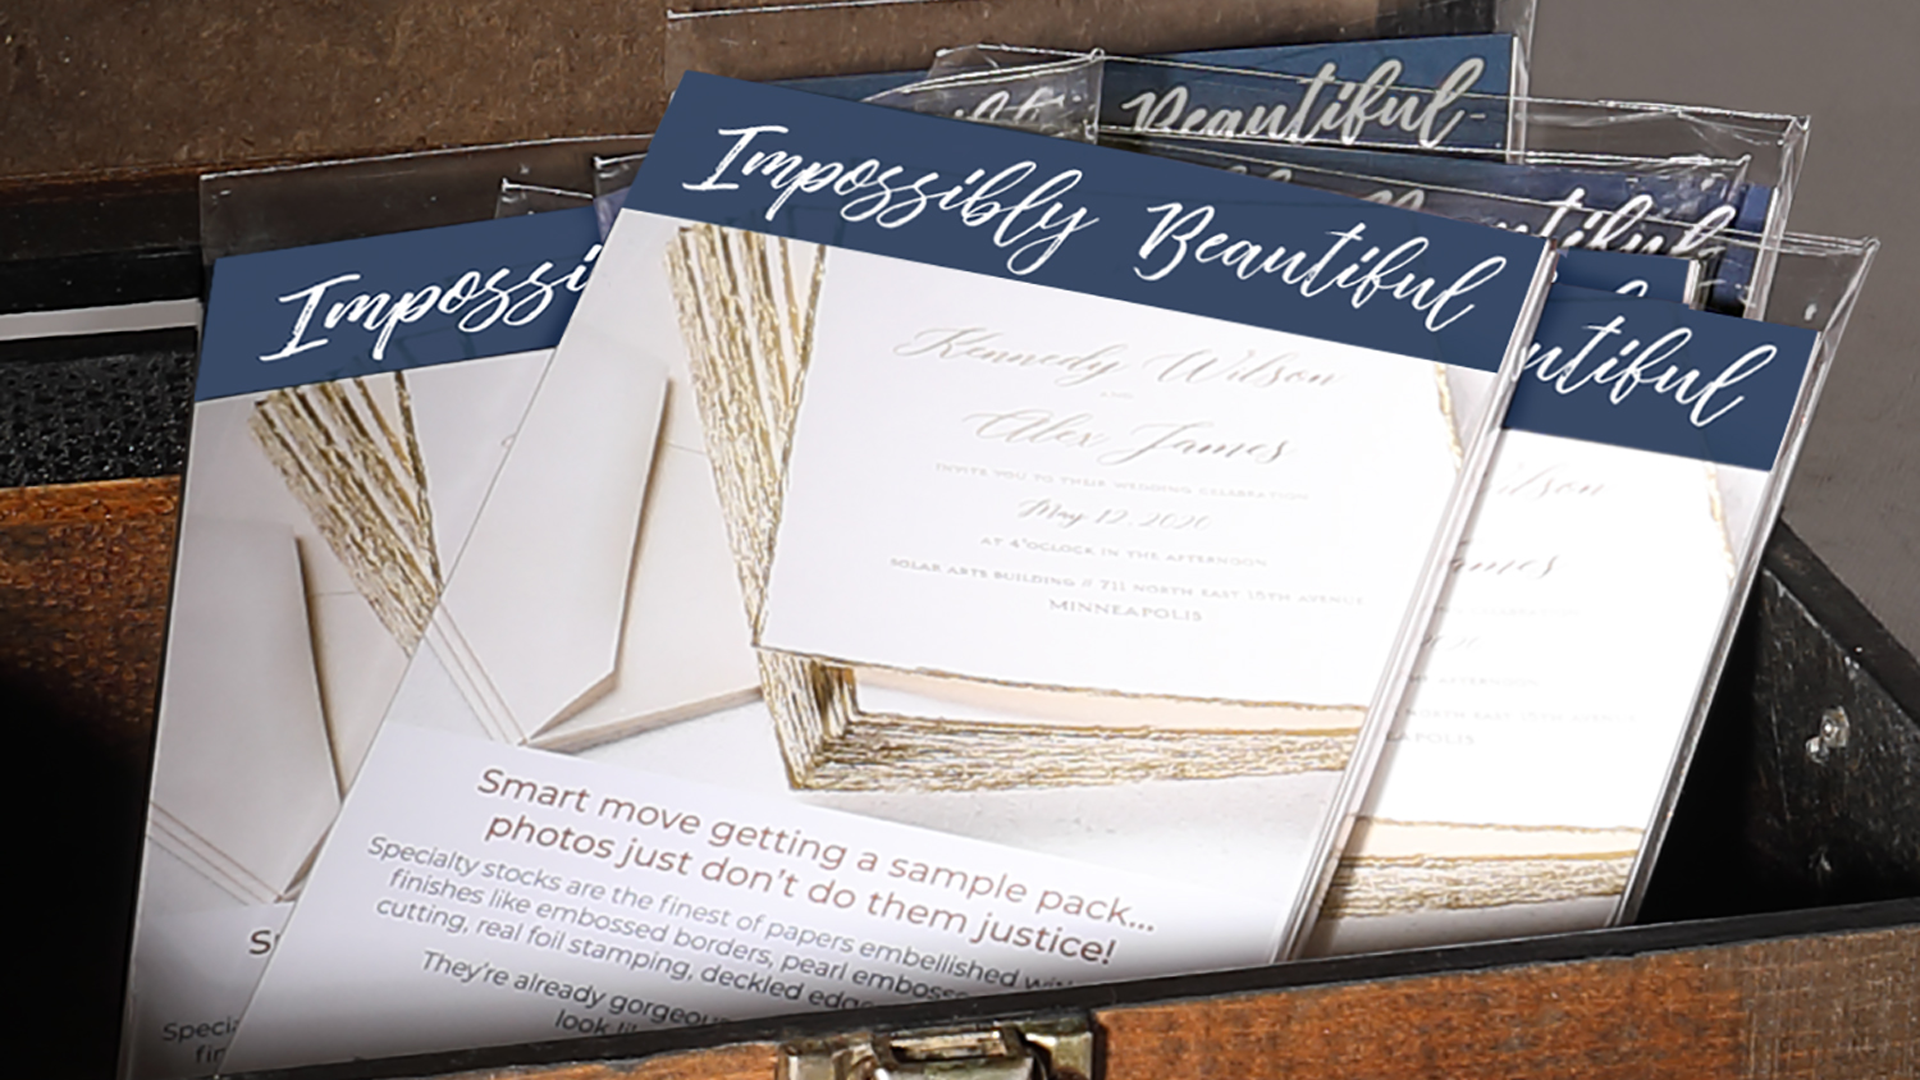 TOG.ink specialty paper stocks from The Occasions Group - Sample packs